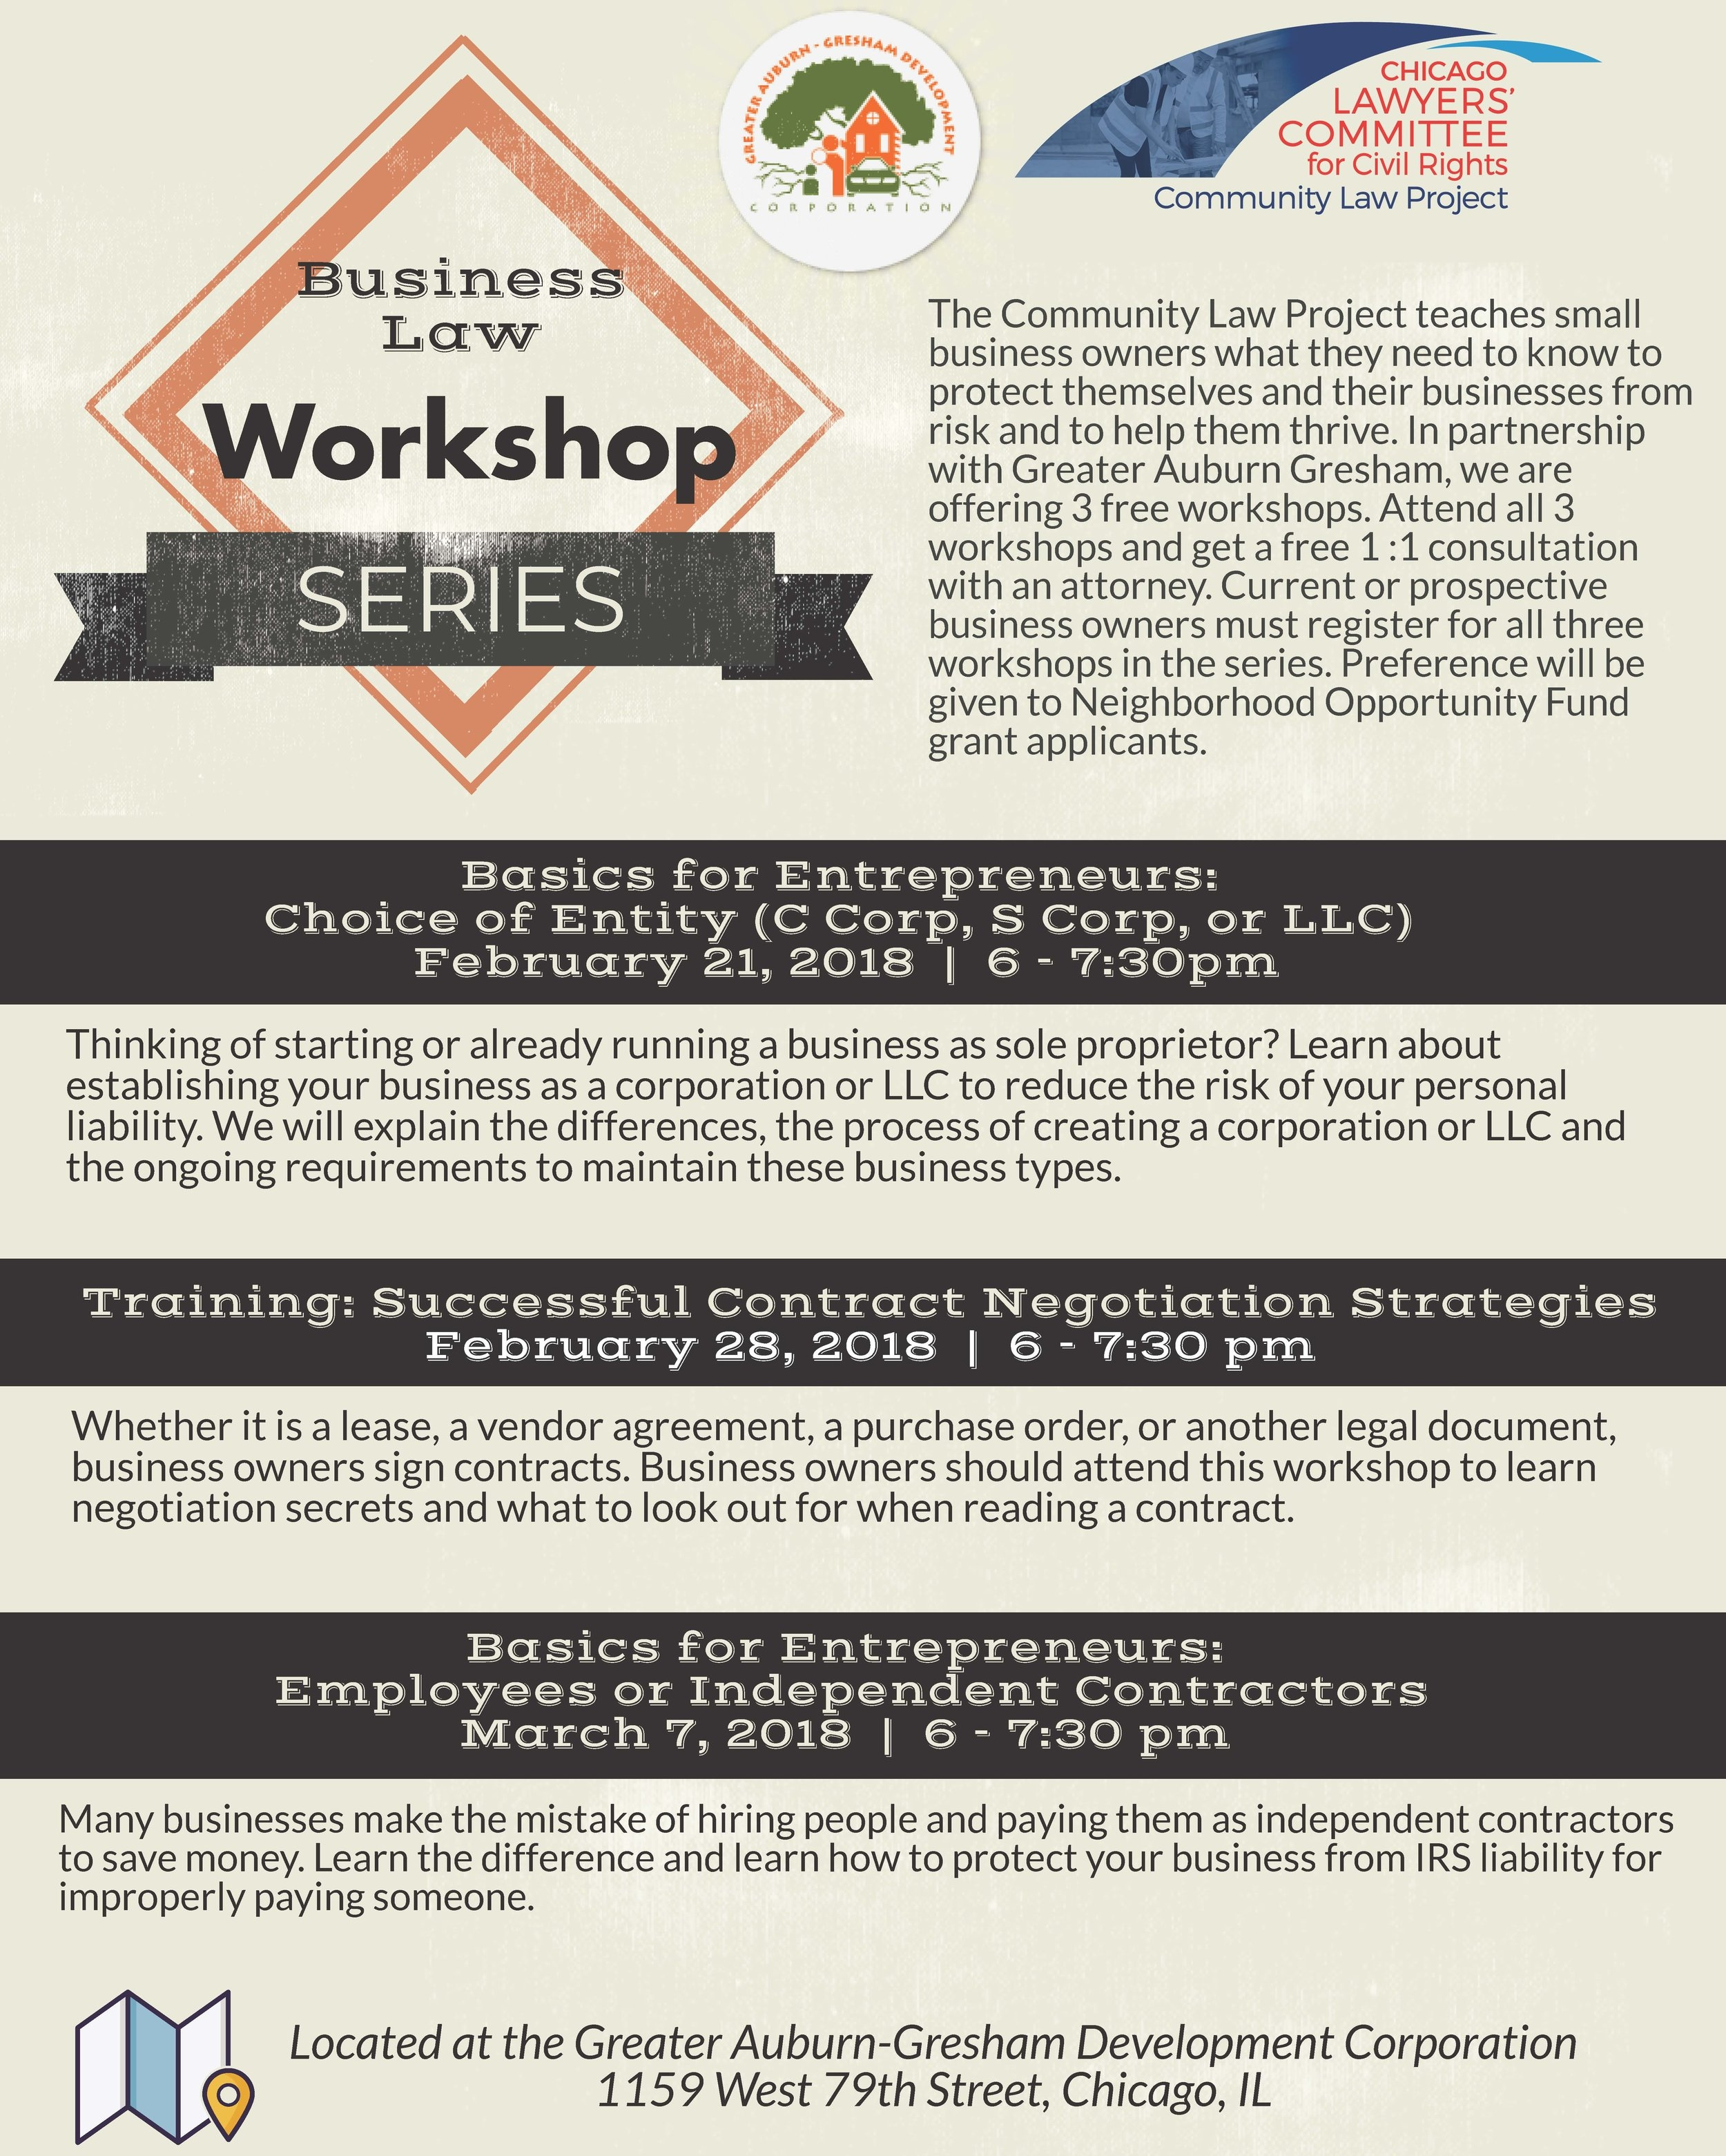 2018 Business Law Workshops first series.jpg